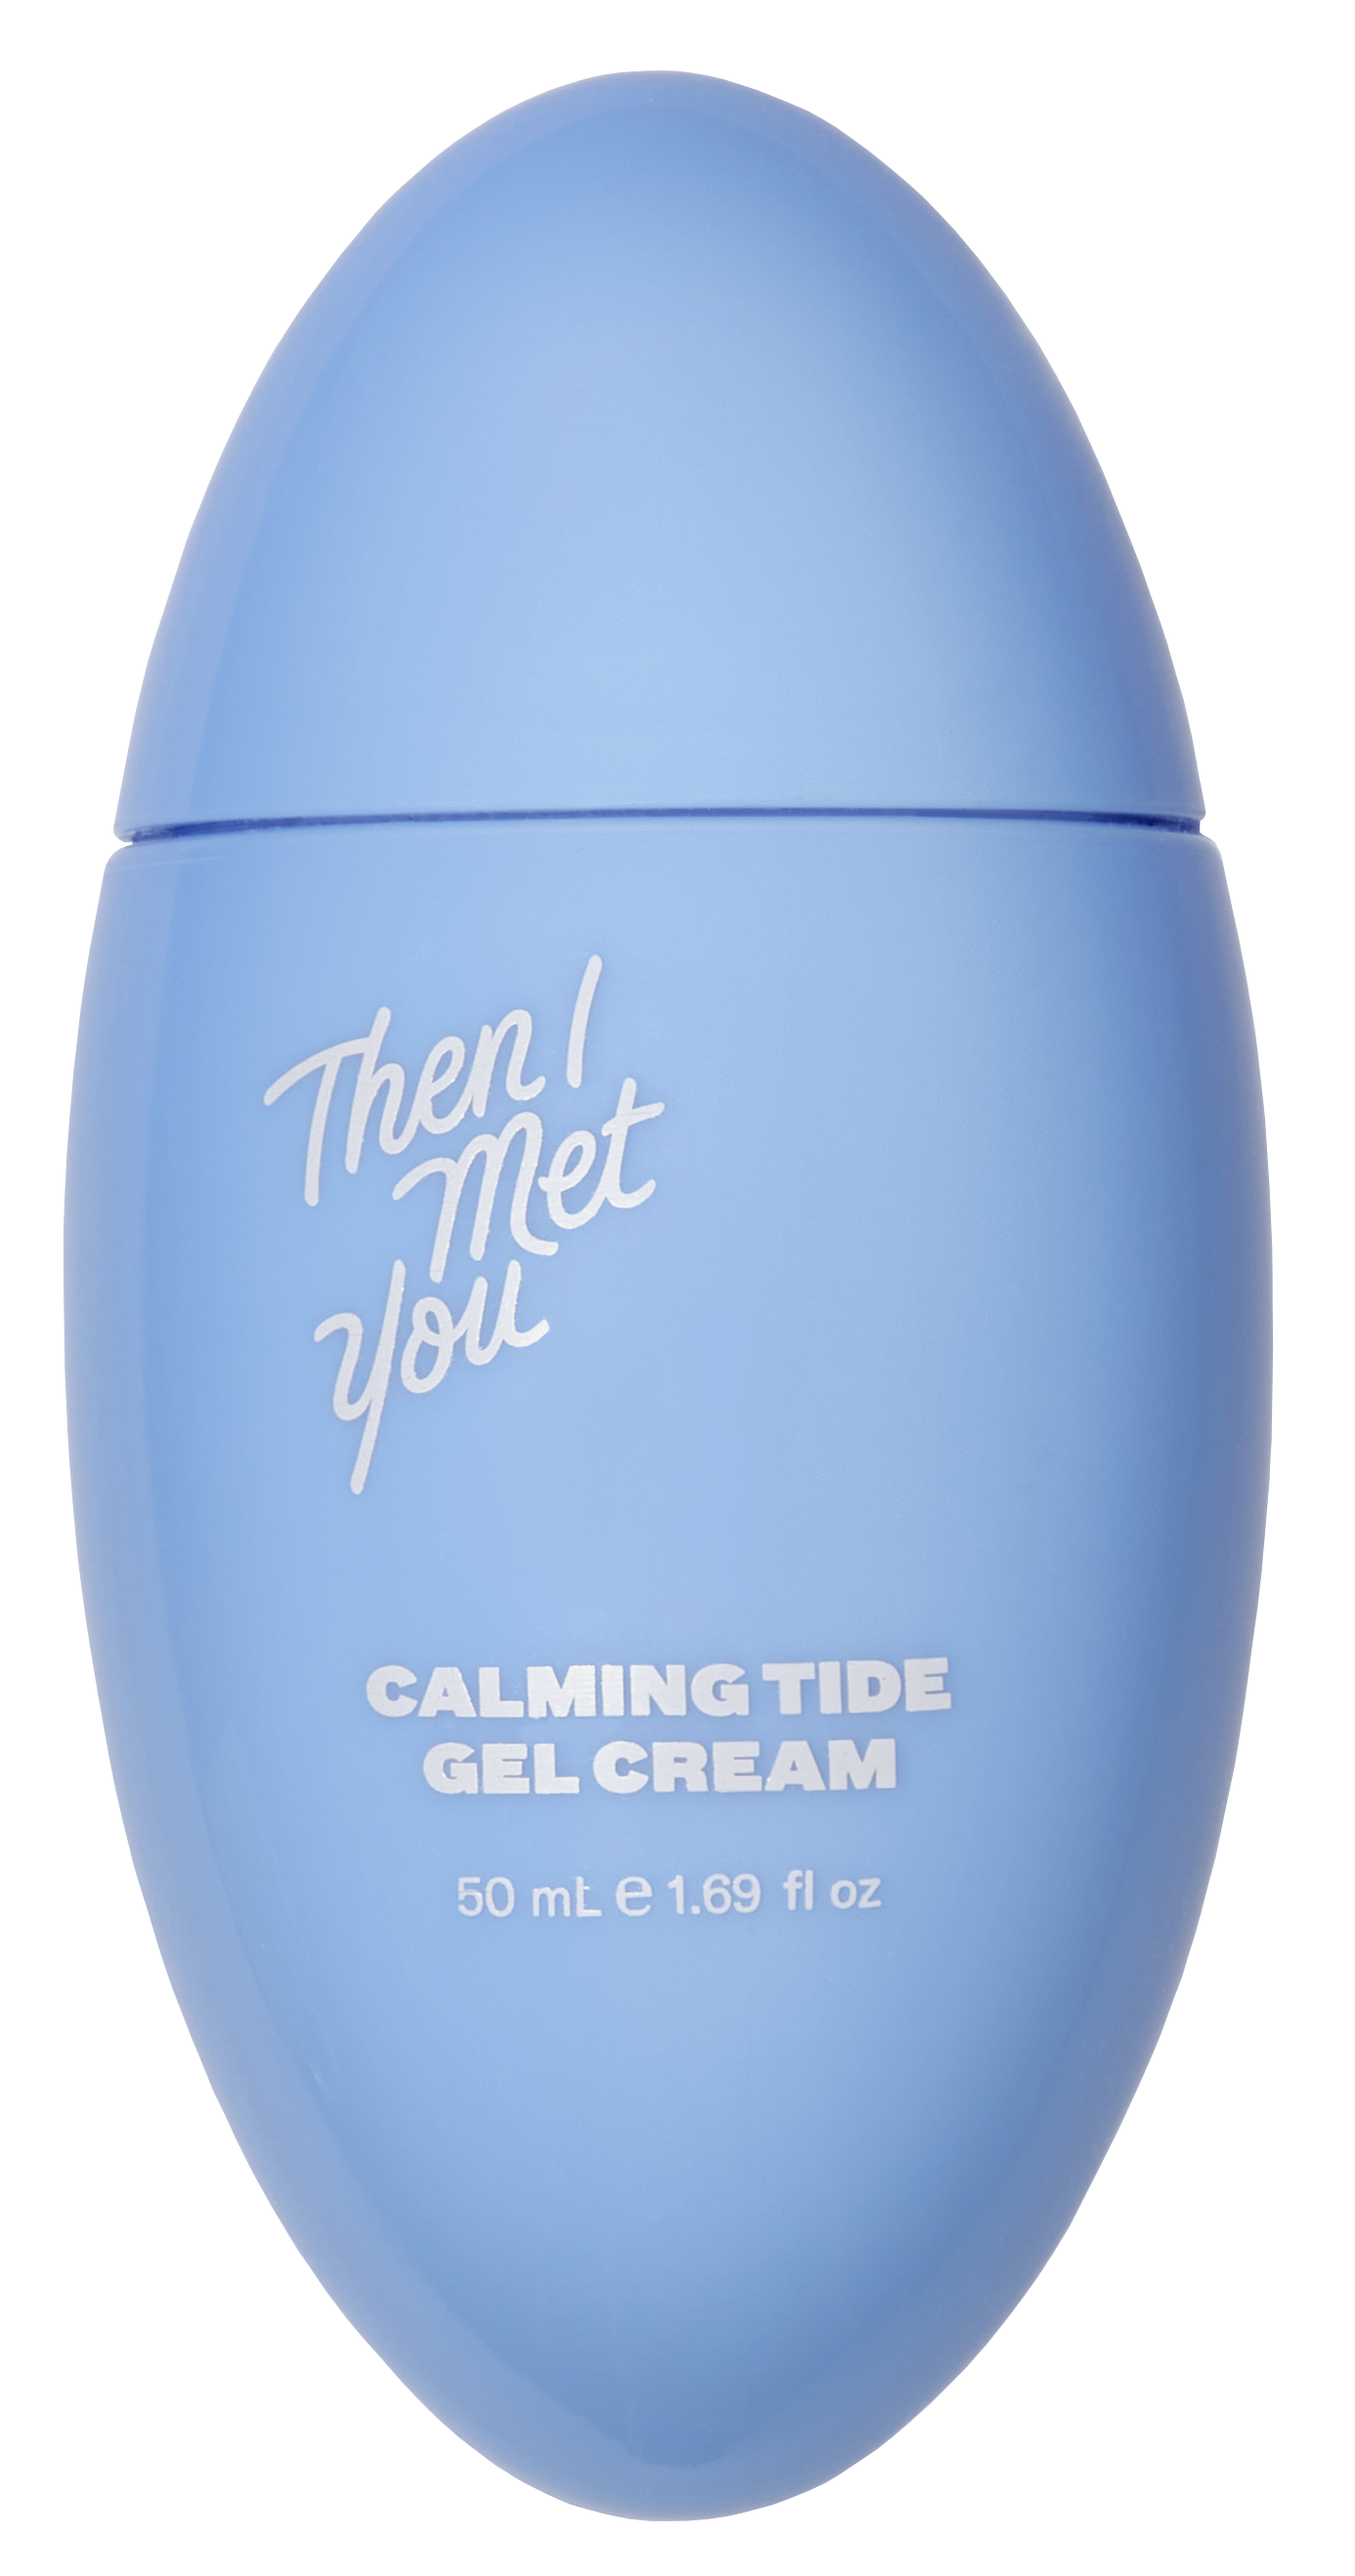 Calming Tide Gel Cream™